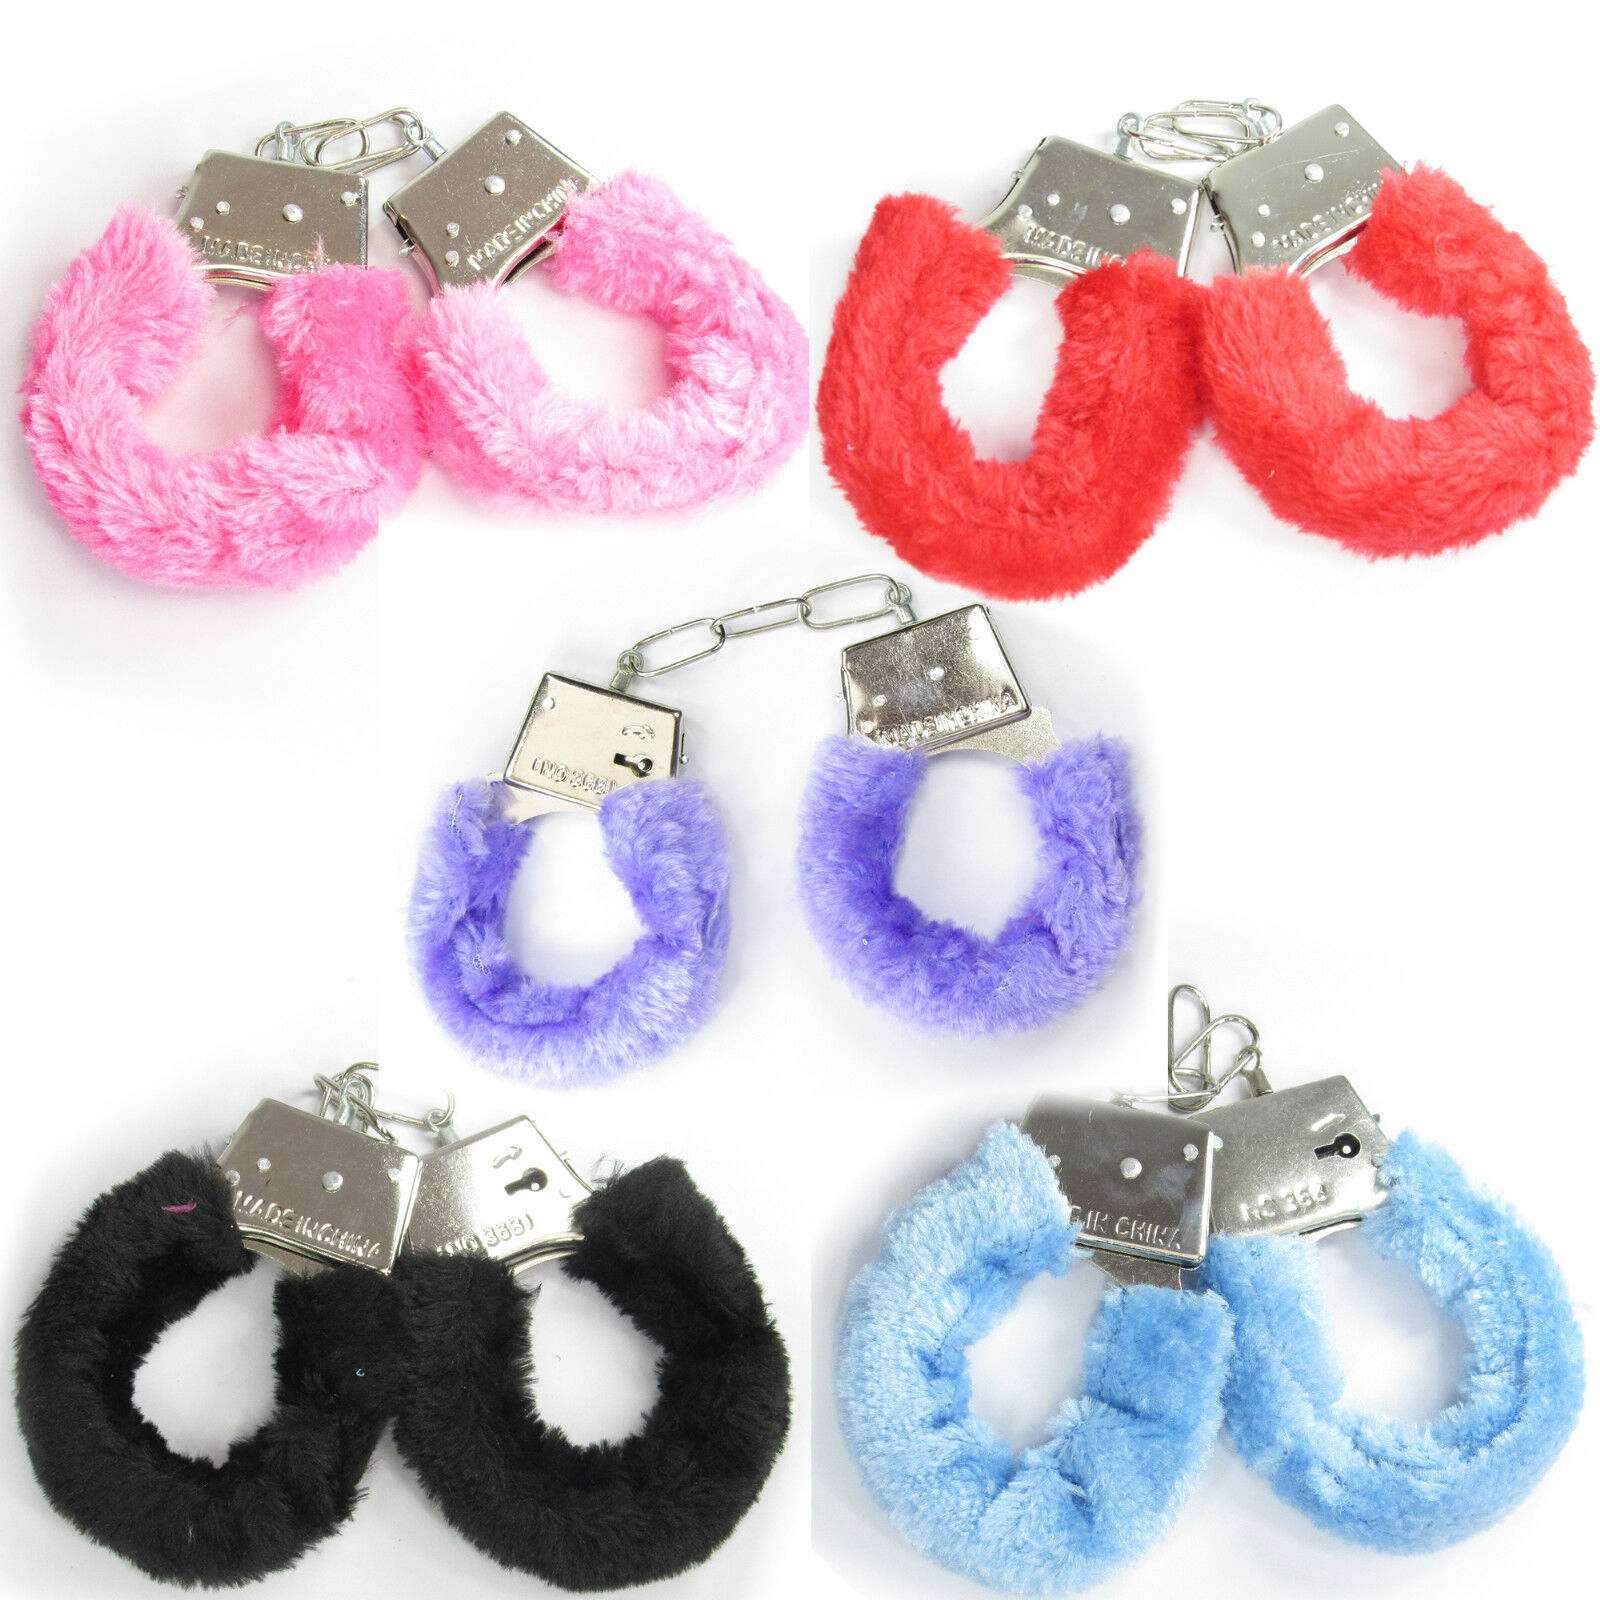 Details about FLUFFY FURRY HANDCUFFS FANCY DRESS HEN NIGHT SEXY PLAY NIGHT  TOY - UK SELLER